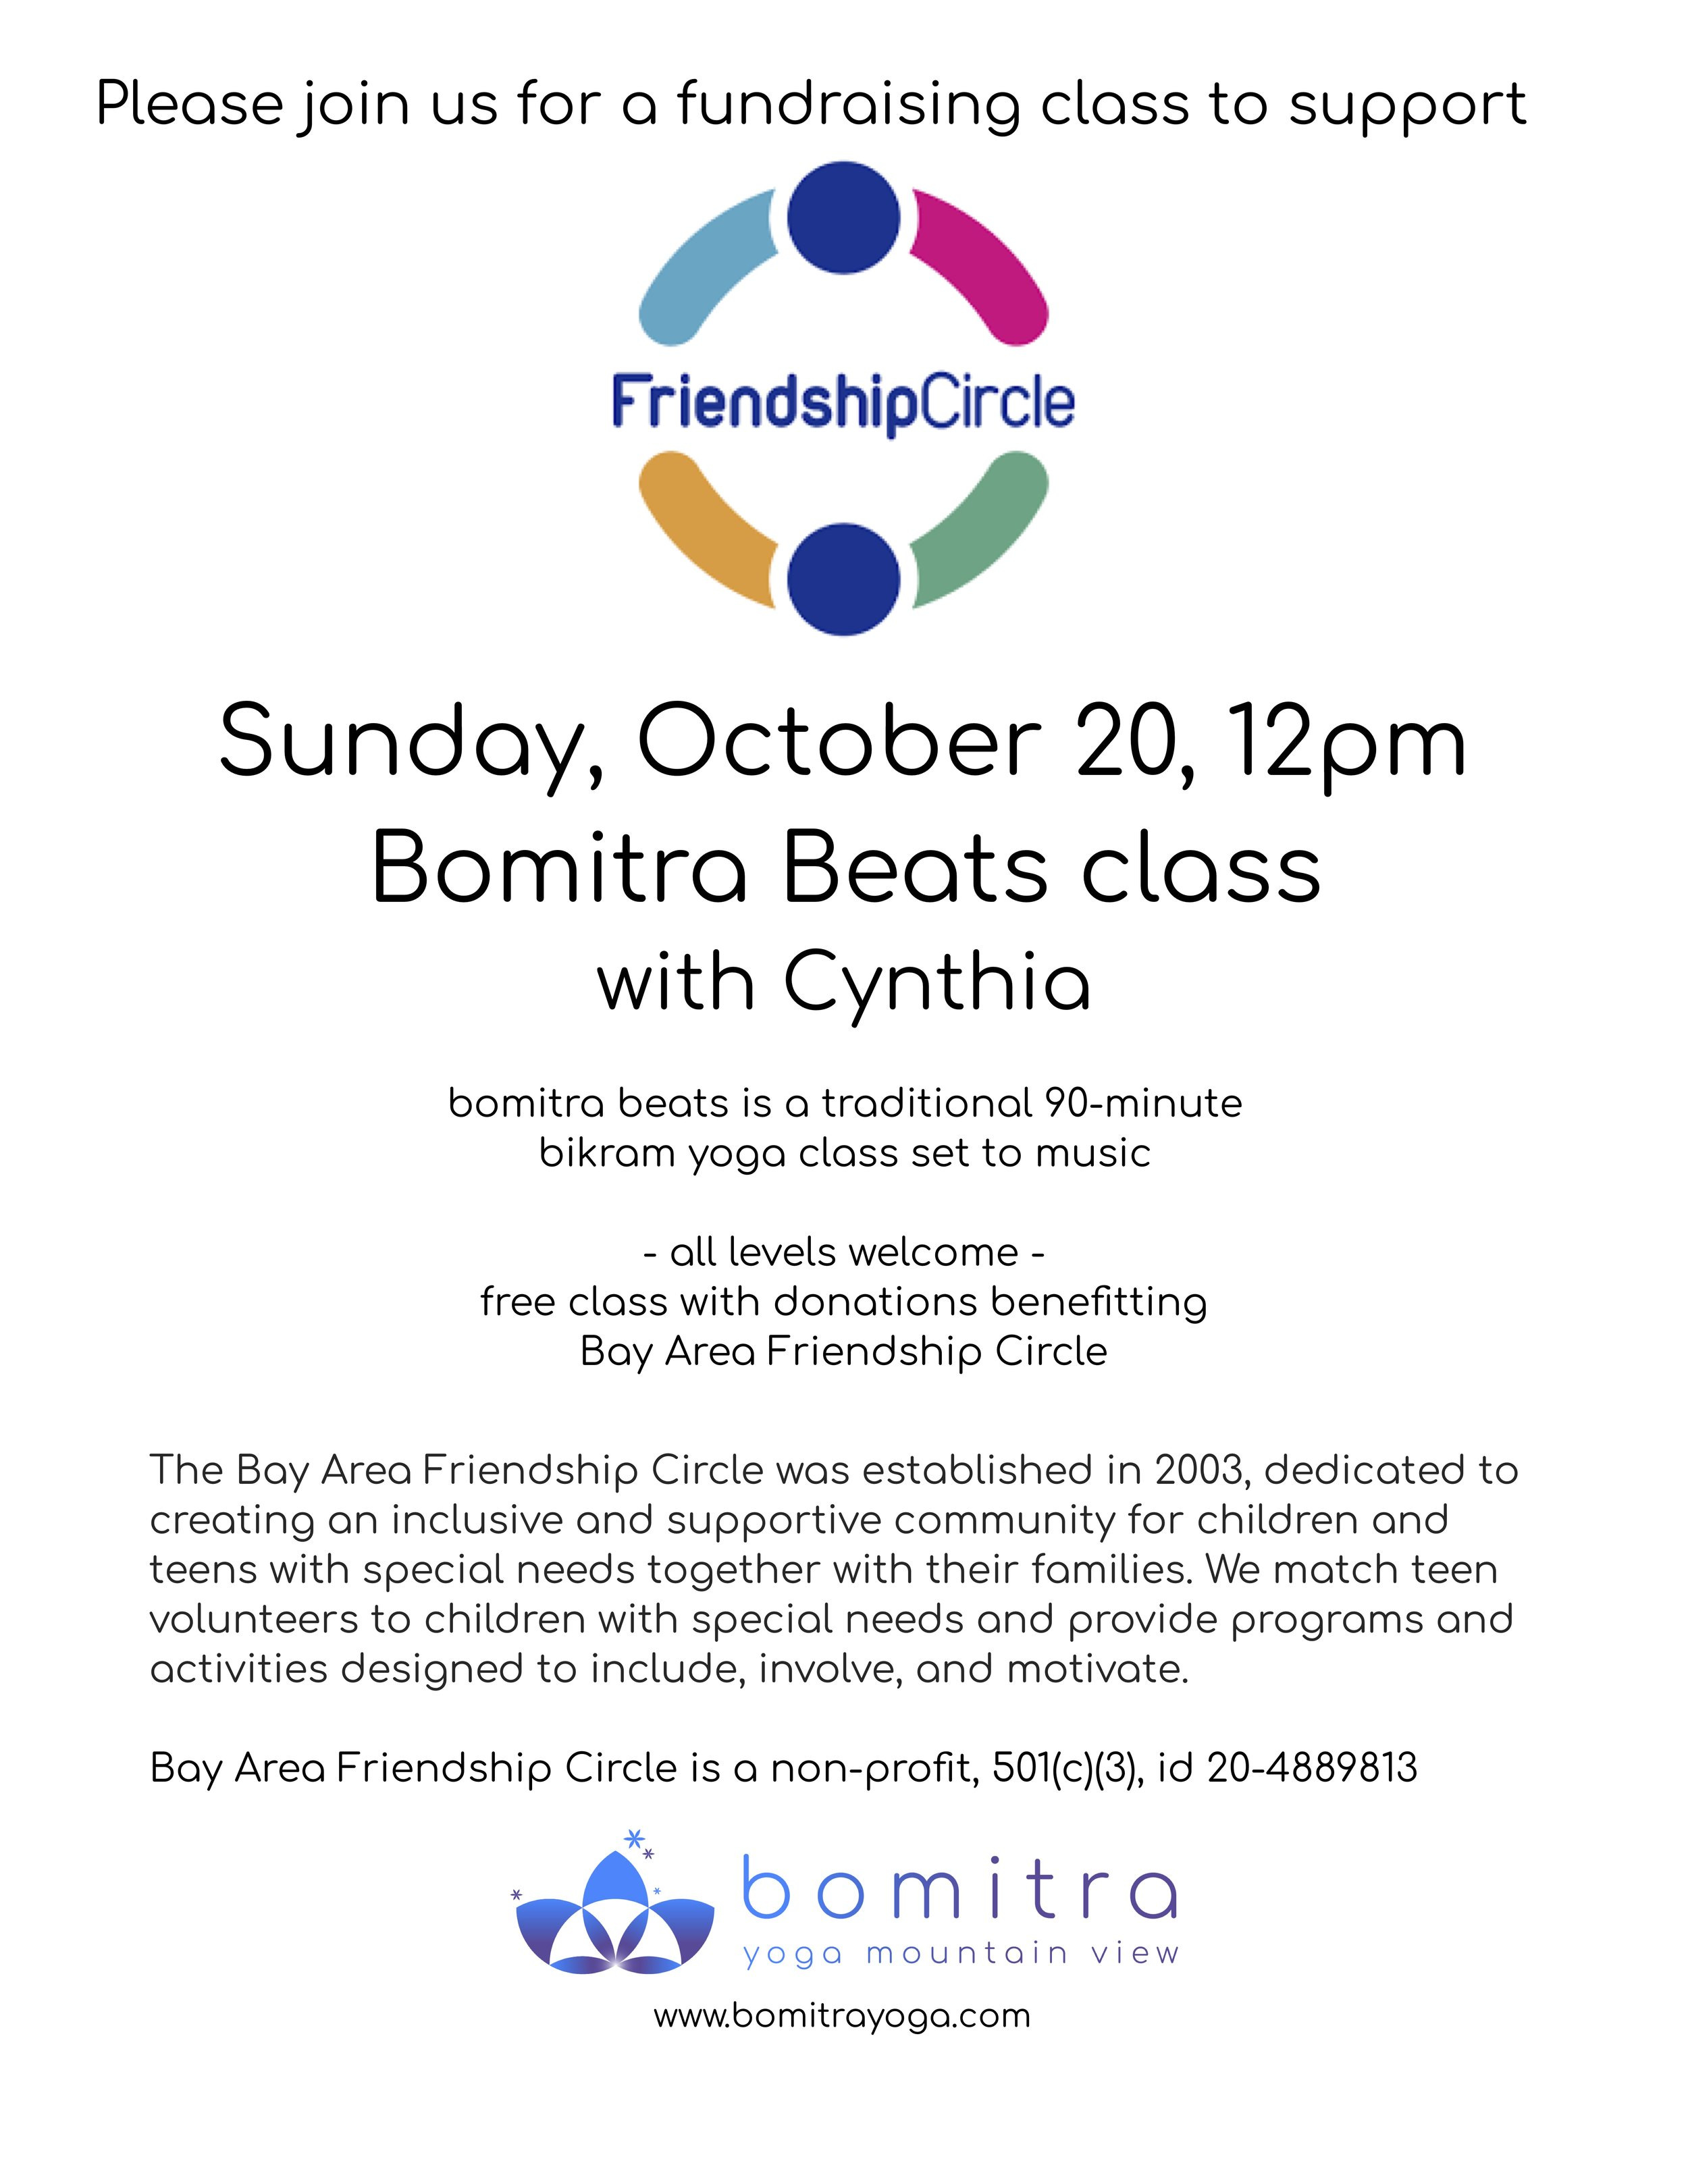 Learn more about the Bay Area Friendship Circle  here .